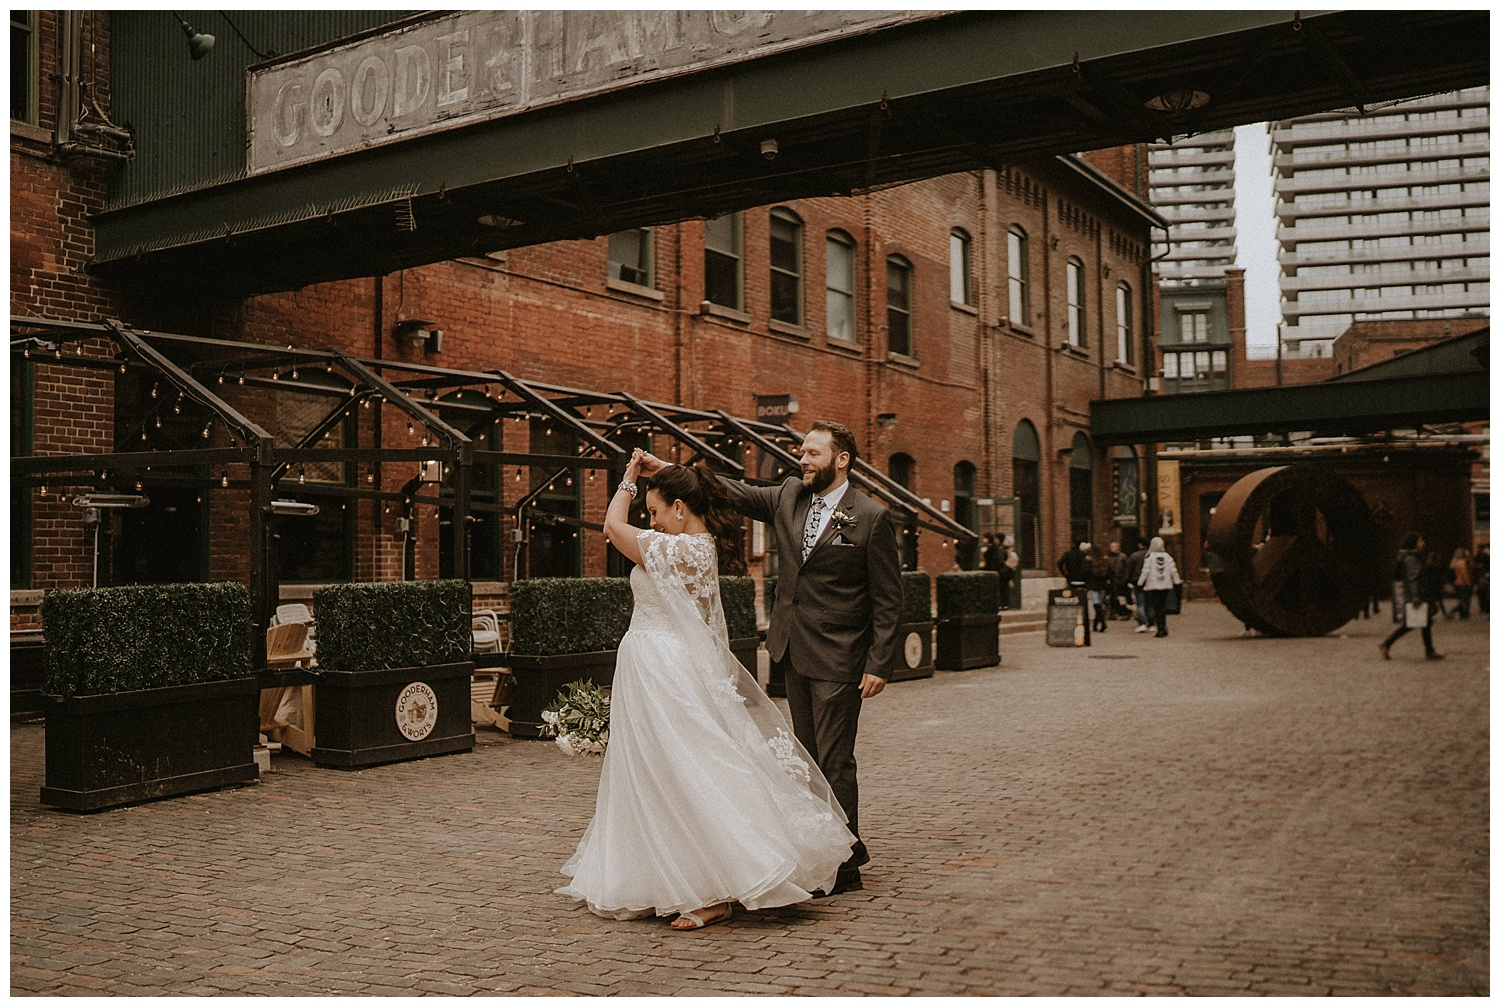 Katie Marie Photography | Archeo Wedding Arta Gallery Wedding | Distillery District Wedding | Toronto Wedding Photographer | Hamilton Toronto Ontario Wedding Photographer |_0033.jpg